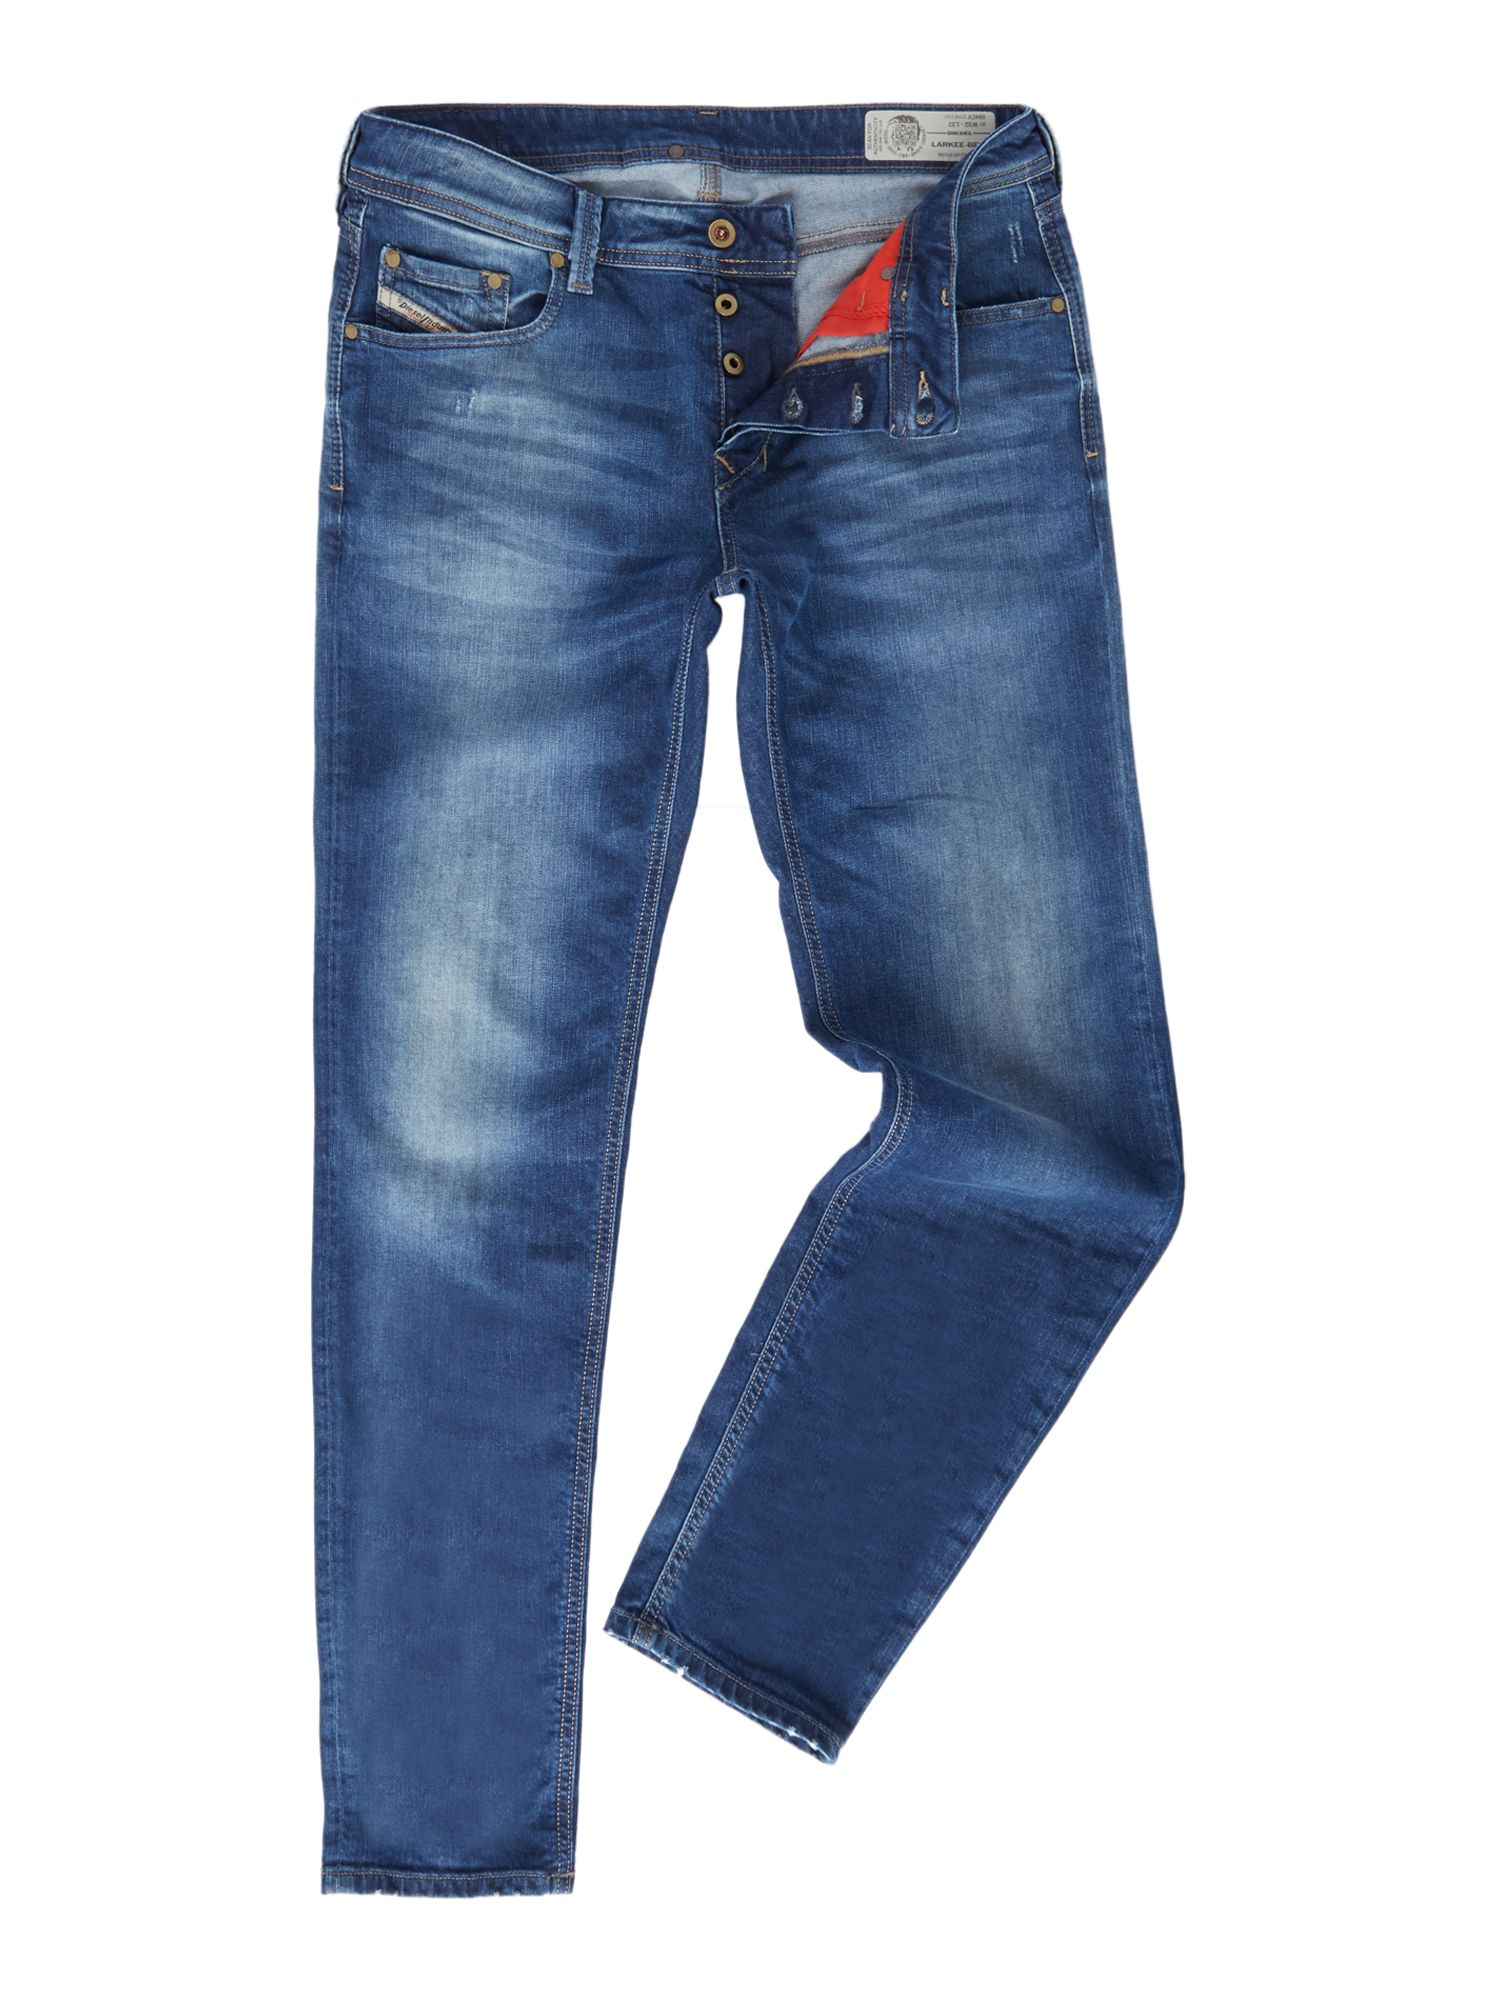 Men's Jeans | Skinny Jeans for Men - House of Fraser